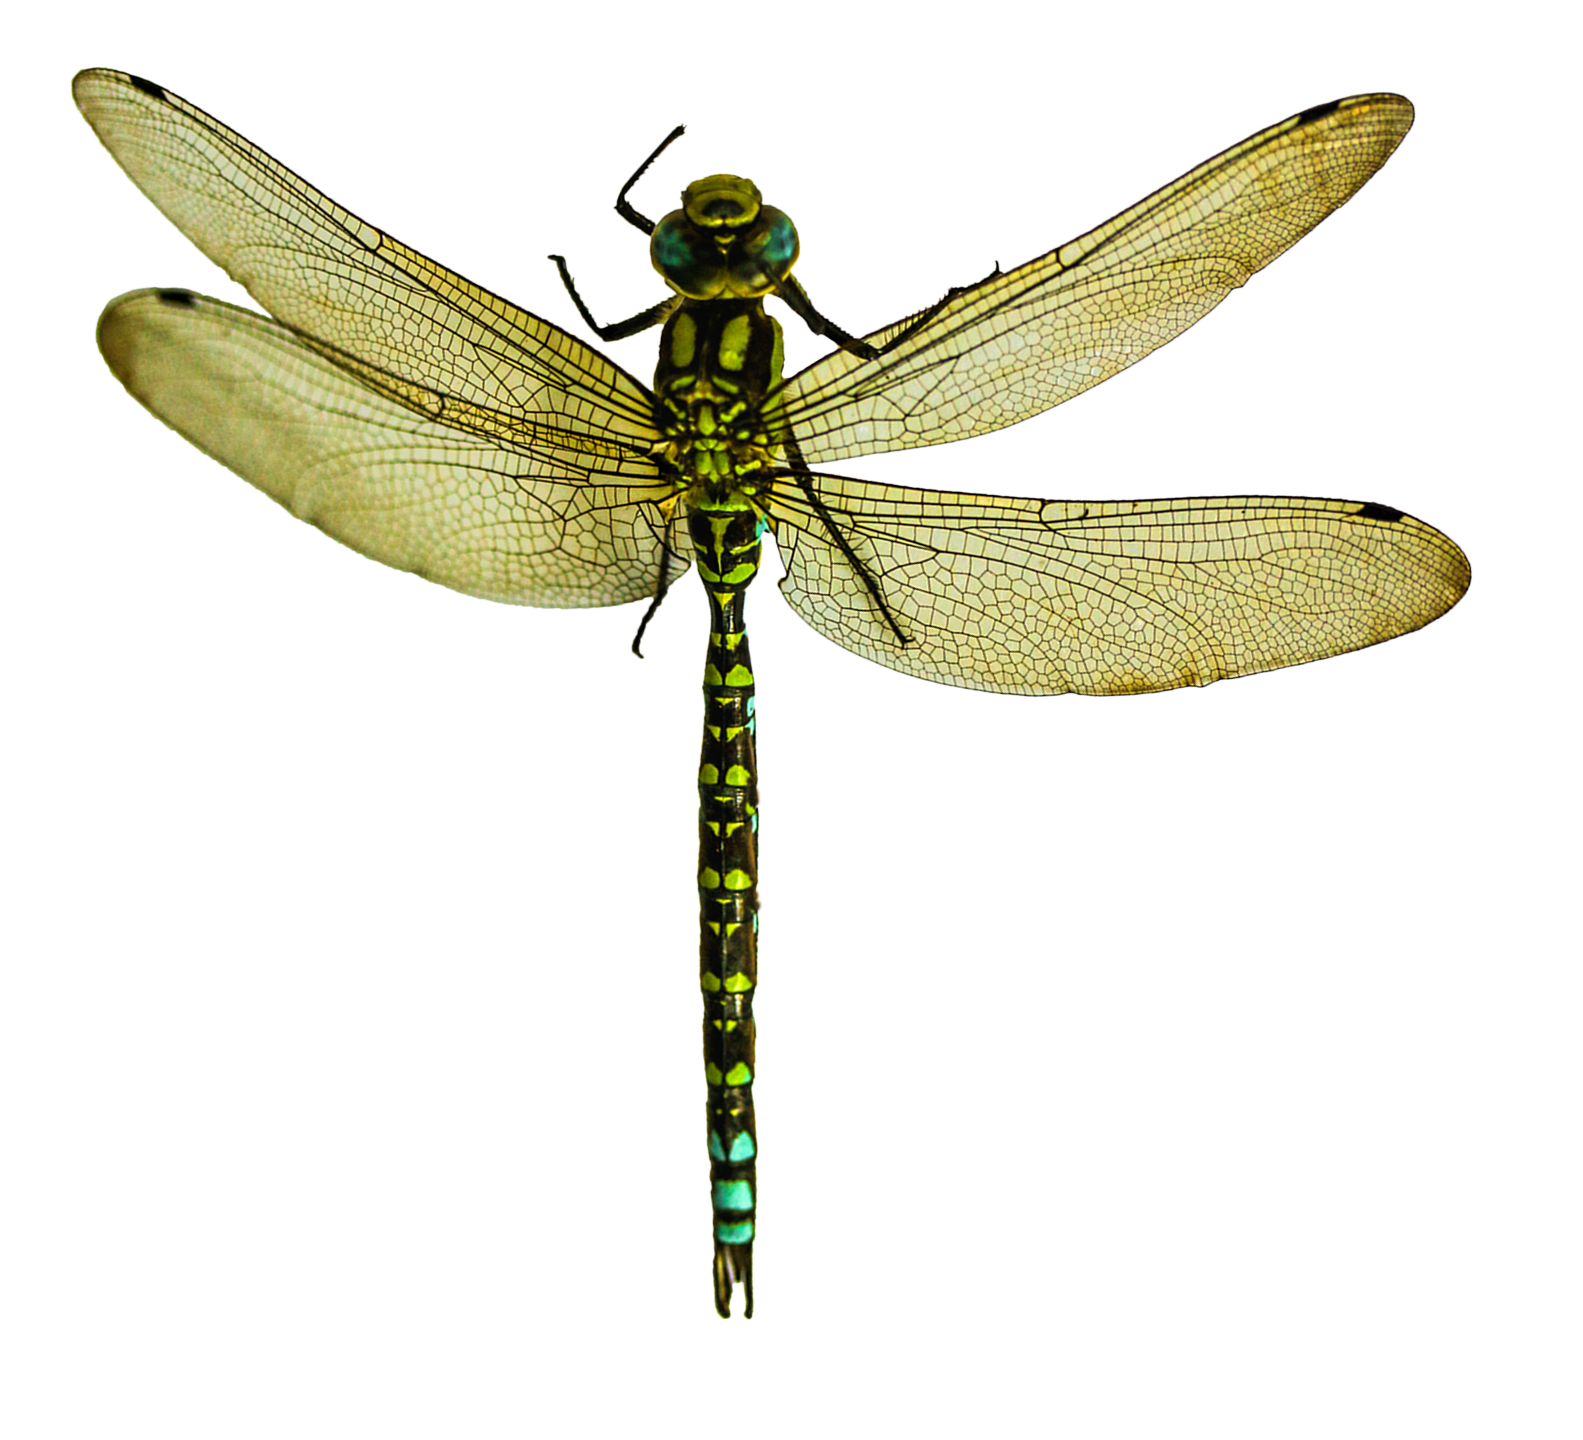 Dragonfly Png Transparent Image - Dragonfly, Transparent background PNG HD thumbnail